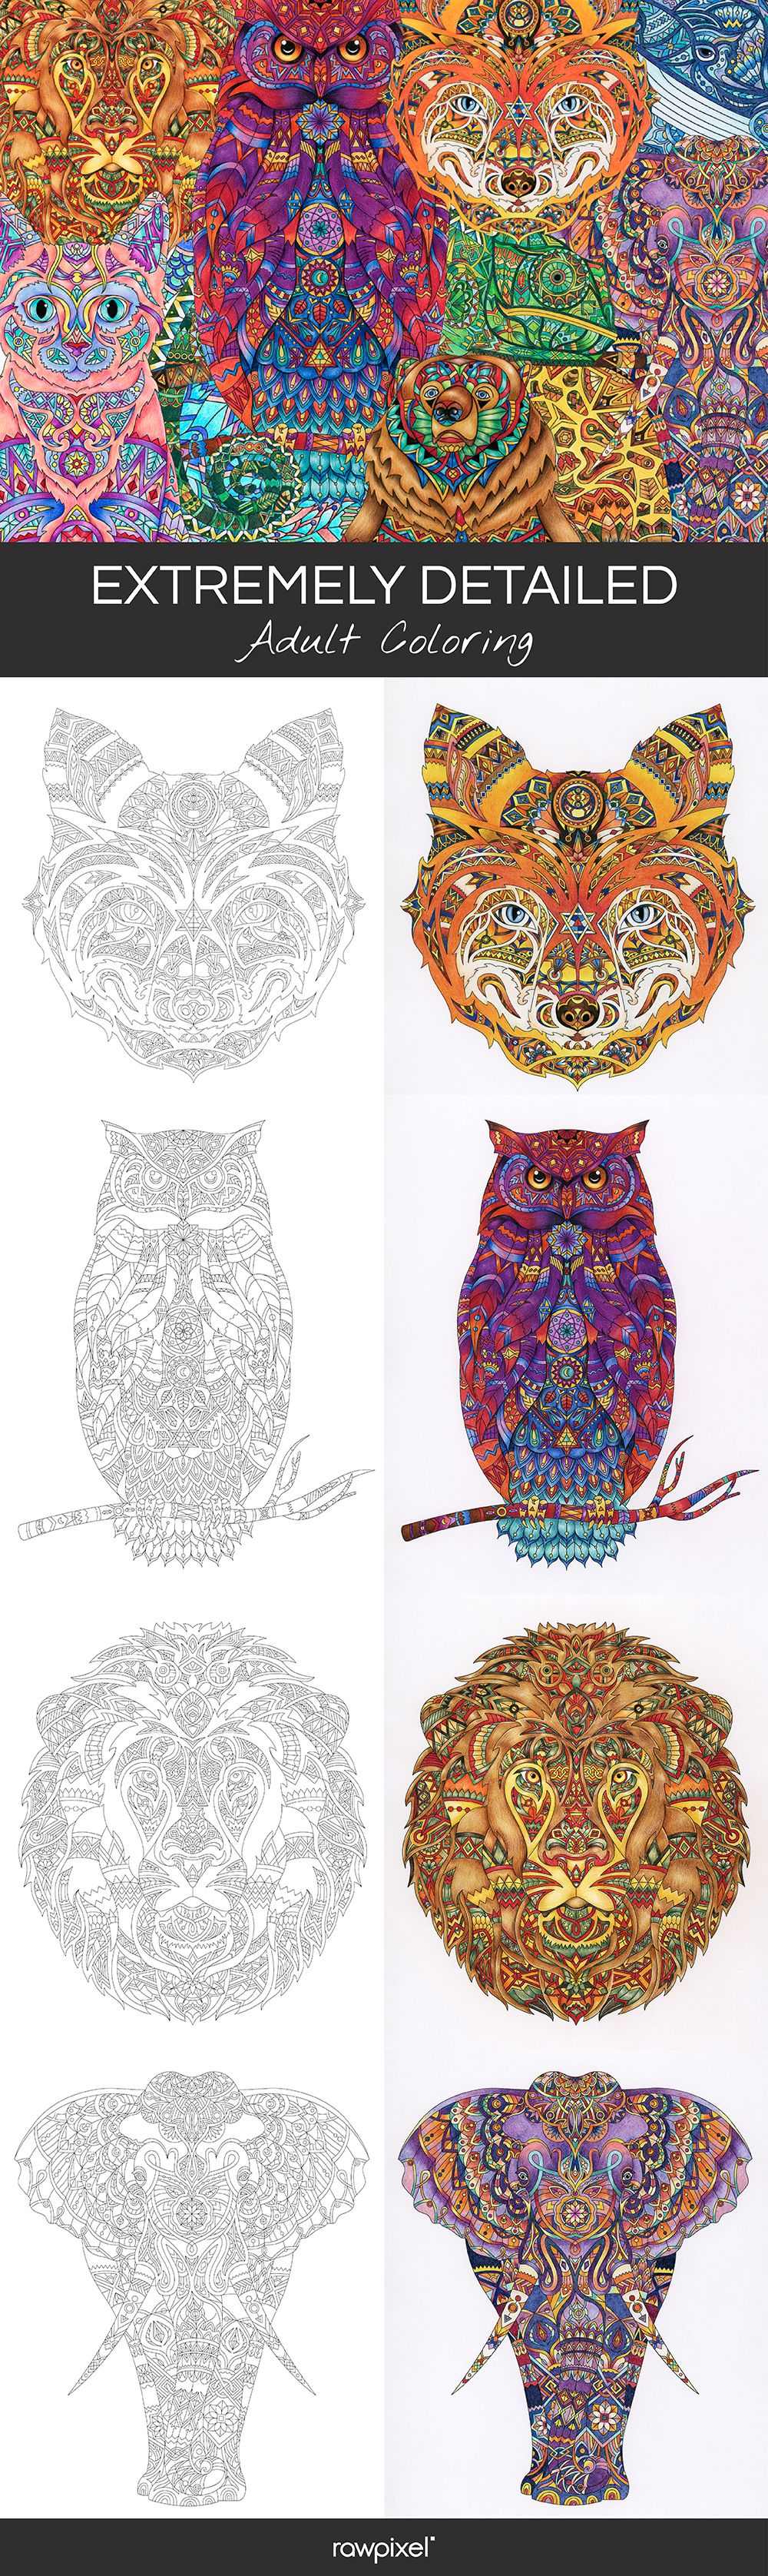 Free Download The Hardest Most Detailes Adult Coloring Page In